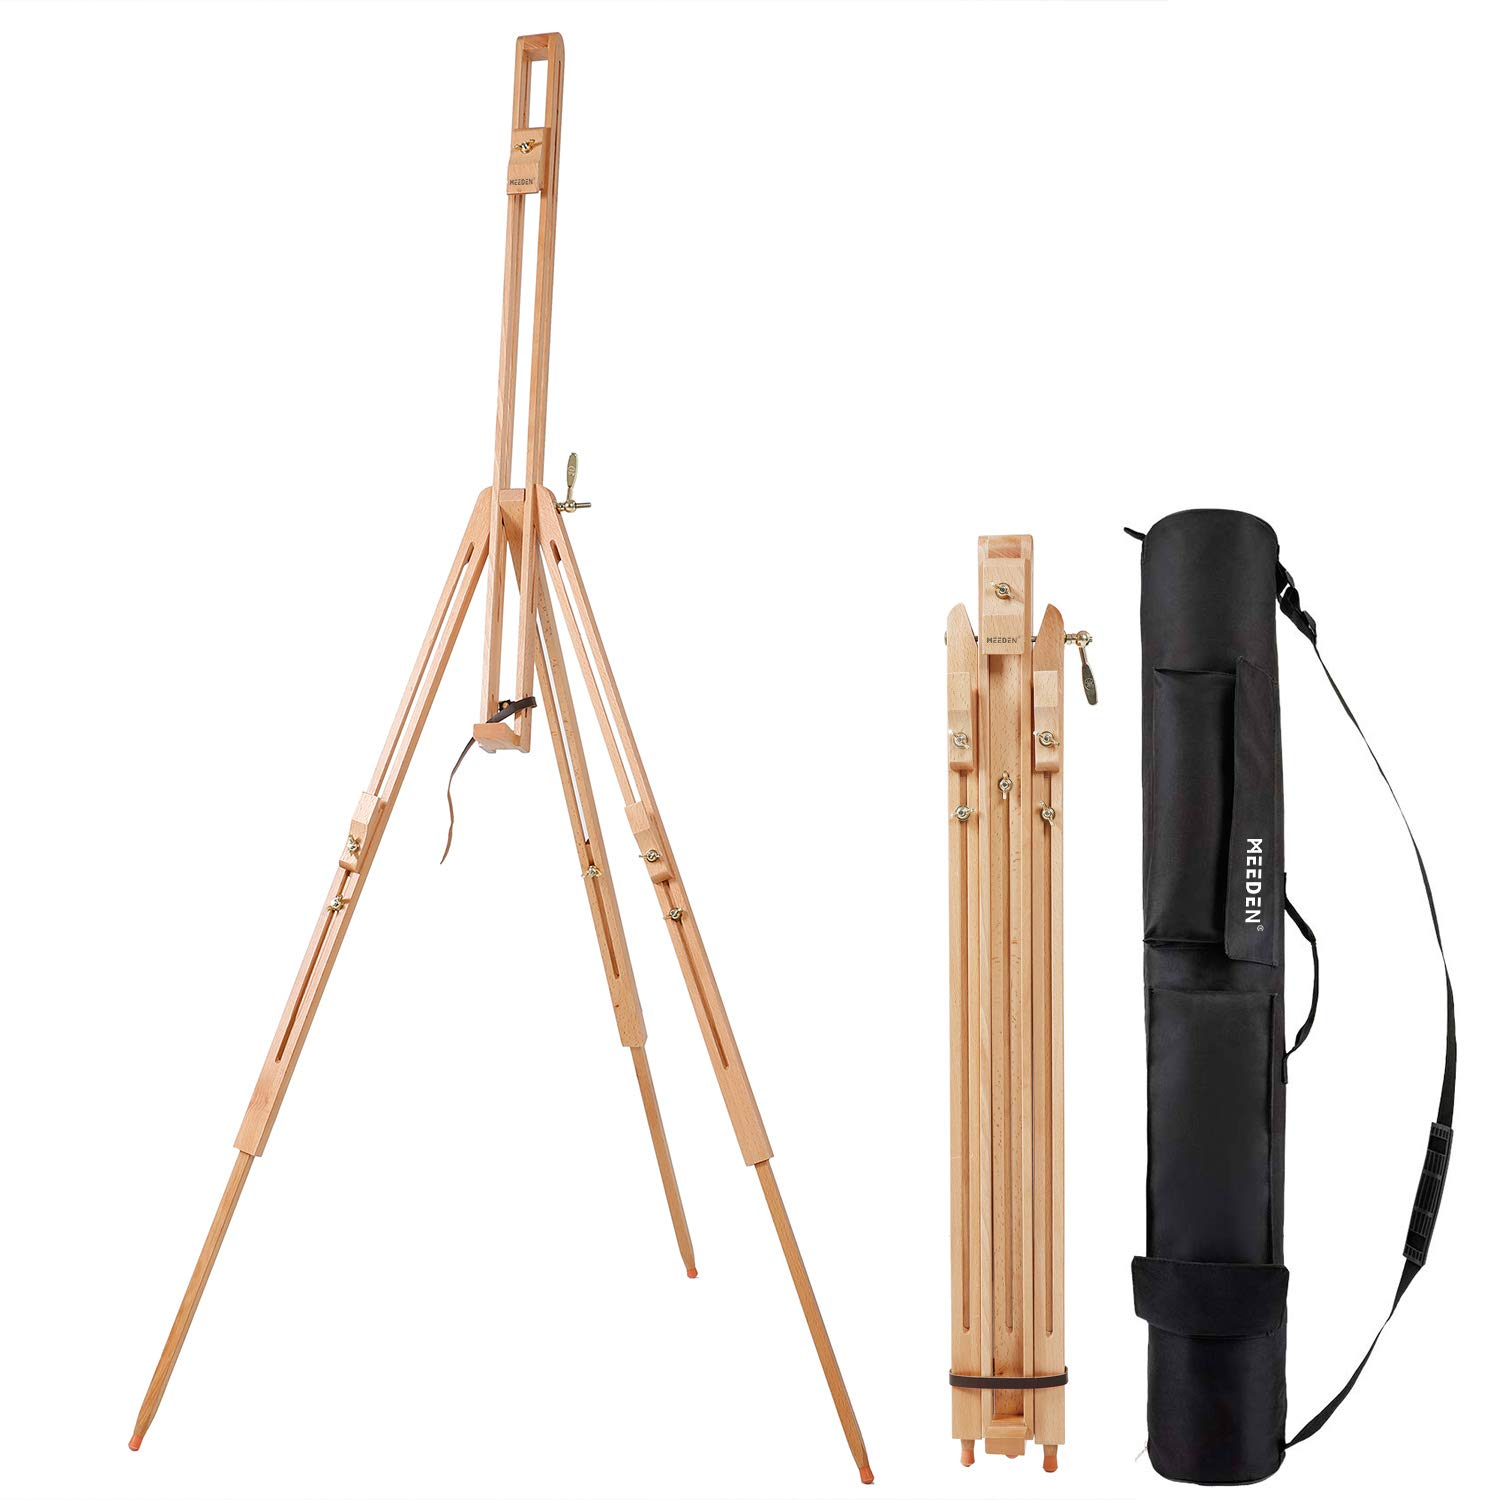 """MEEDEN Tripod Field Painting Easel with Carrying Case - Solid Beech Wood Universal Tripod Easel Portable Painting Artist Easel, Perfect for Painters Students, Landscape Artists, Hold Canvas up to 42"""""""